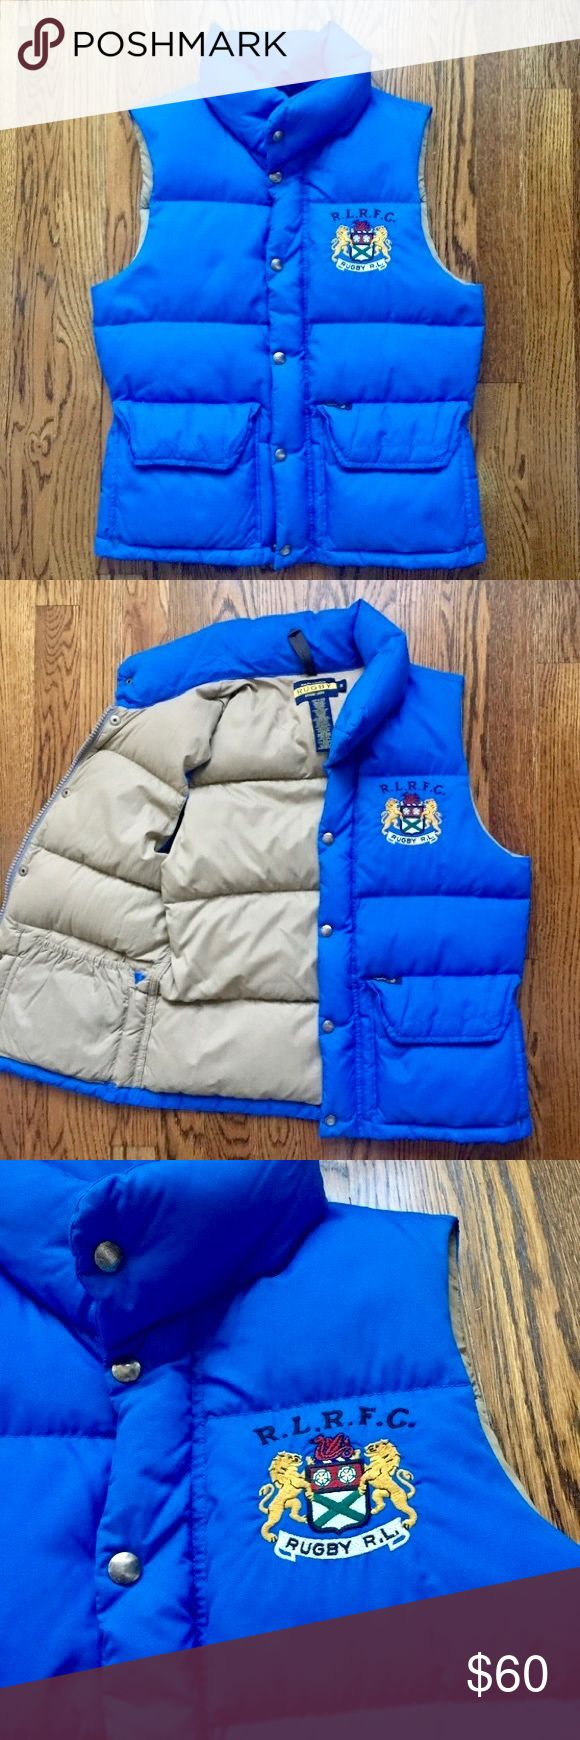 RUGBY Ralph Lauren Vest Excellent condition 🌺🌲🌺🌲🌺could be a great gift🌺let me know if you have any questions 🎊 Rugby Ralph Lauren Jackets & Coats Vests